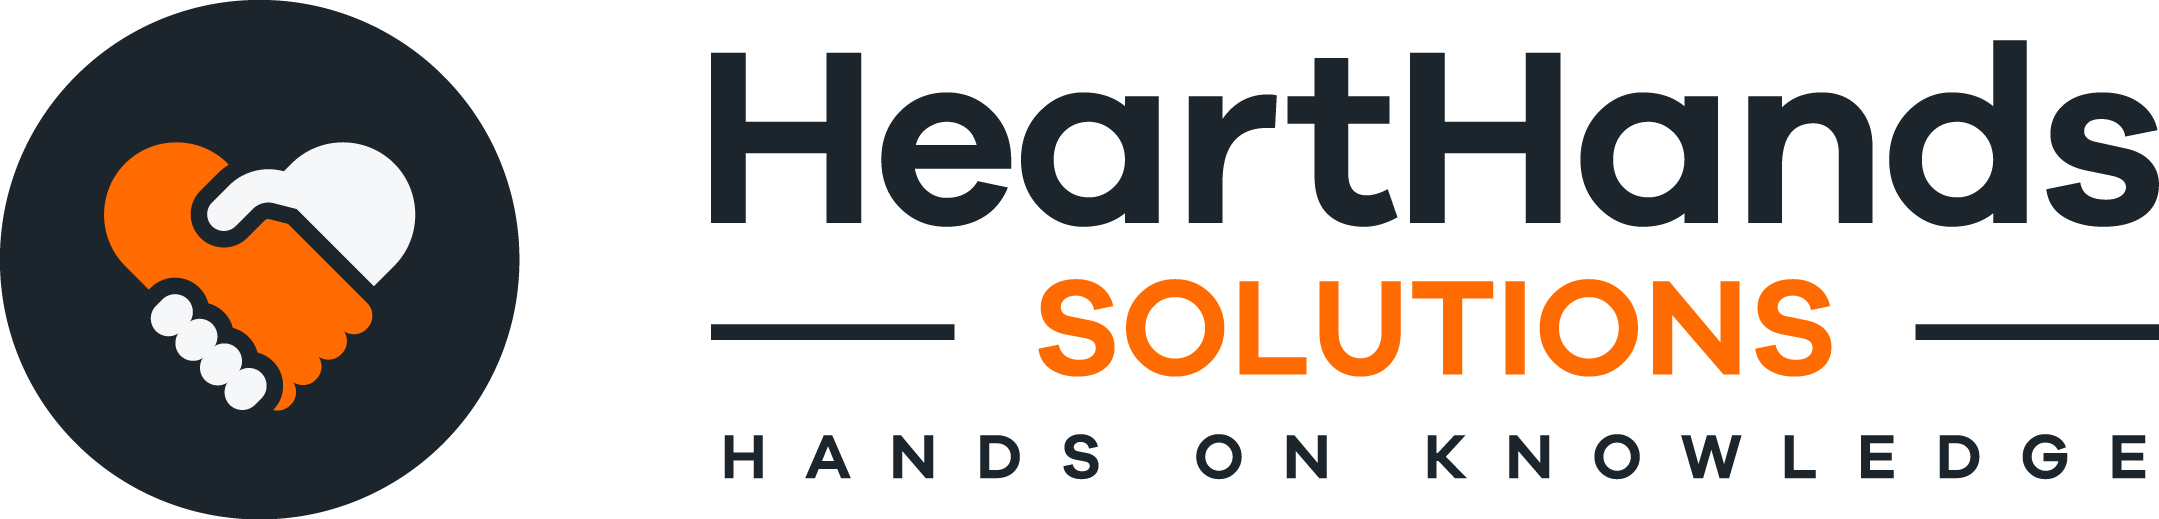 HEARTHANDS SOLUTIONS logo